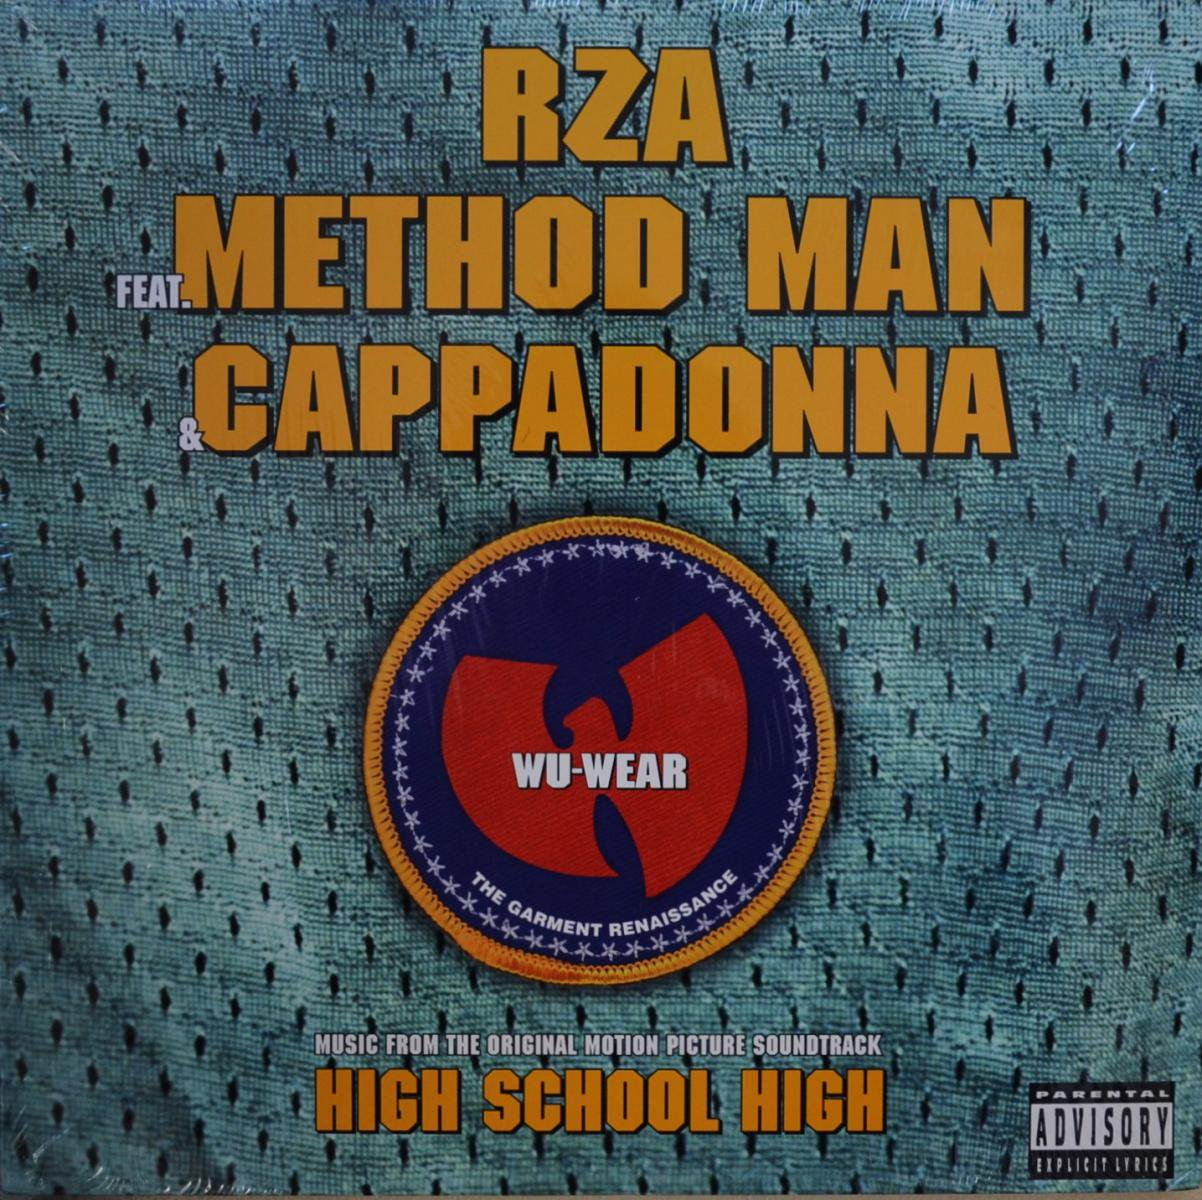 REAL LIVE / RZA - GET DOWN FOR MINE (PROD K-DEF) / WU-WEAR: THE GARMENT RENAISSANCE (12